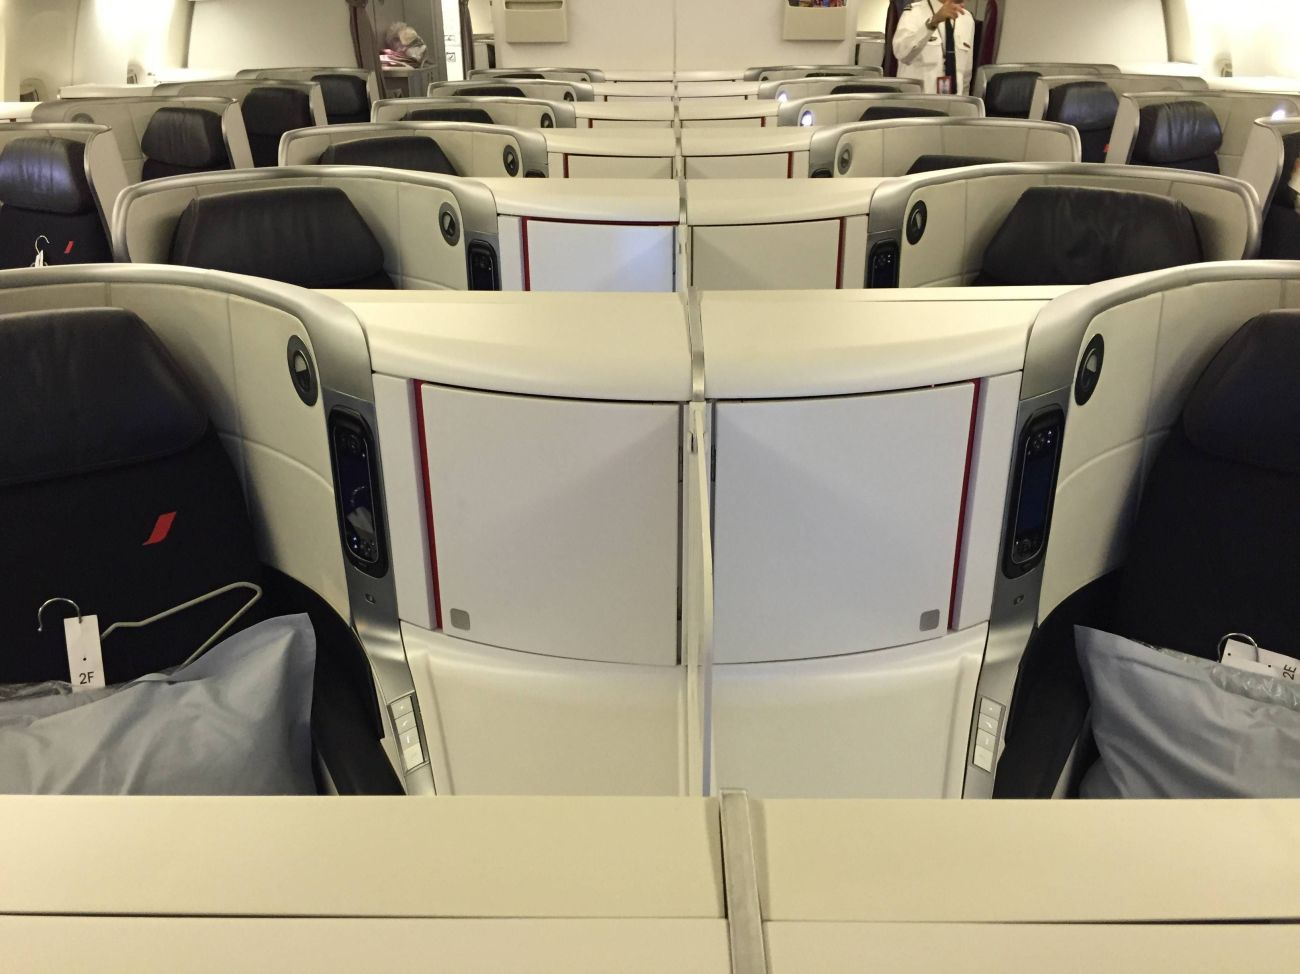 air france new business class nova classe executiva b777-200 passageirodeprimeira